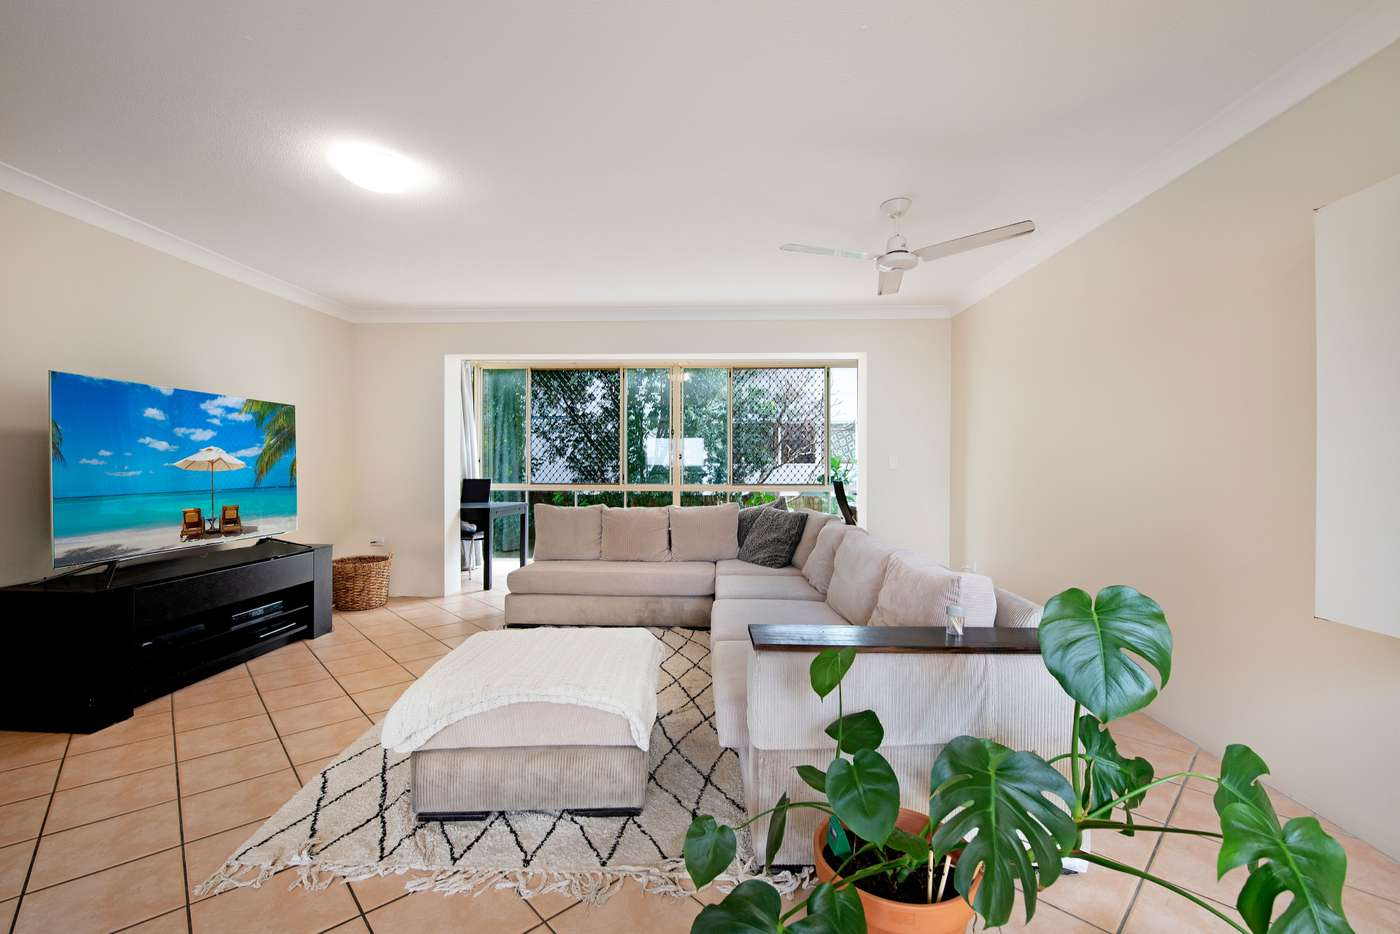 Sixth view of Homely unit listing, 3/80 Albatross Avenue, Mermaid Beach QLD 4218